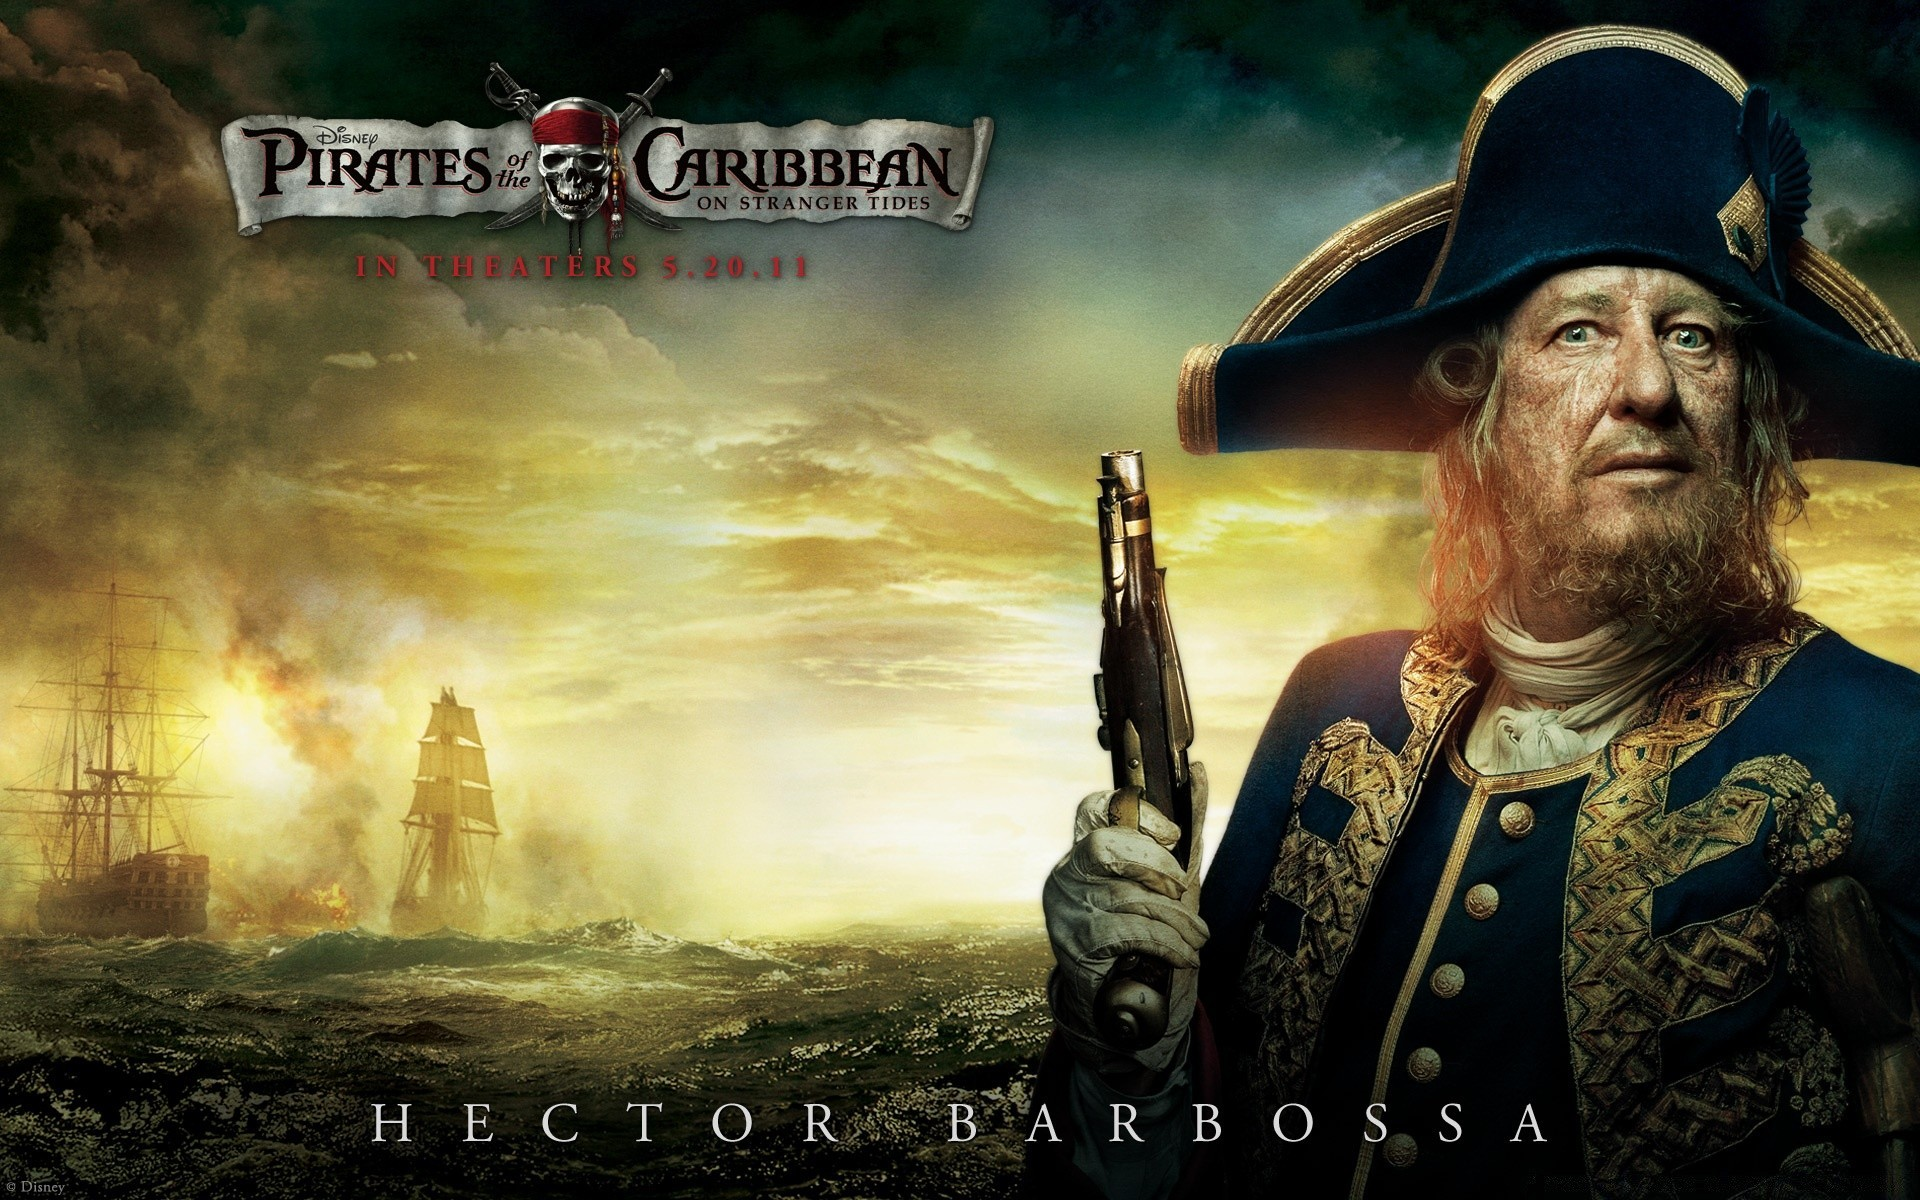 Barbossa 2011 Pirates Of The Caribbean On Stranger Tides